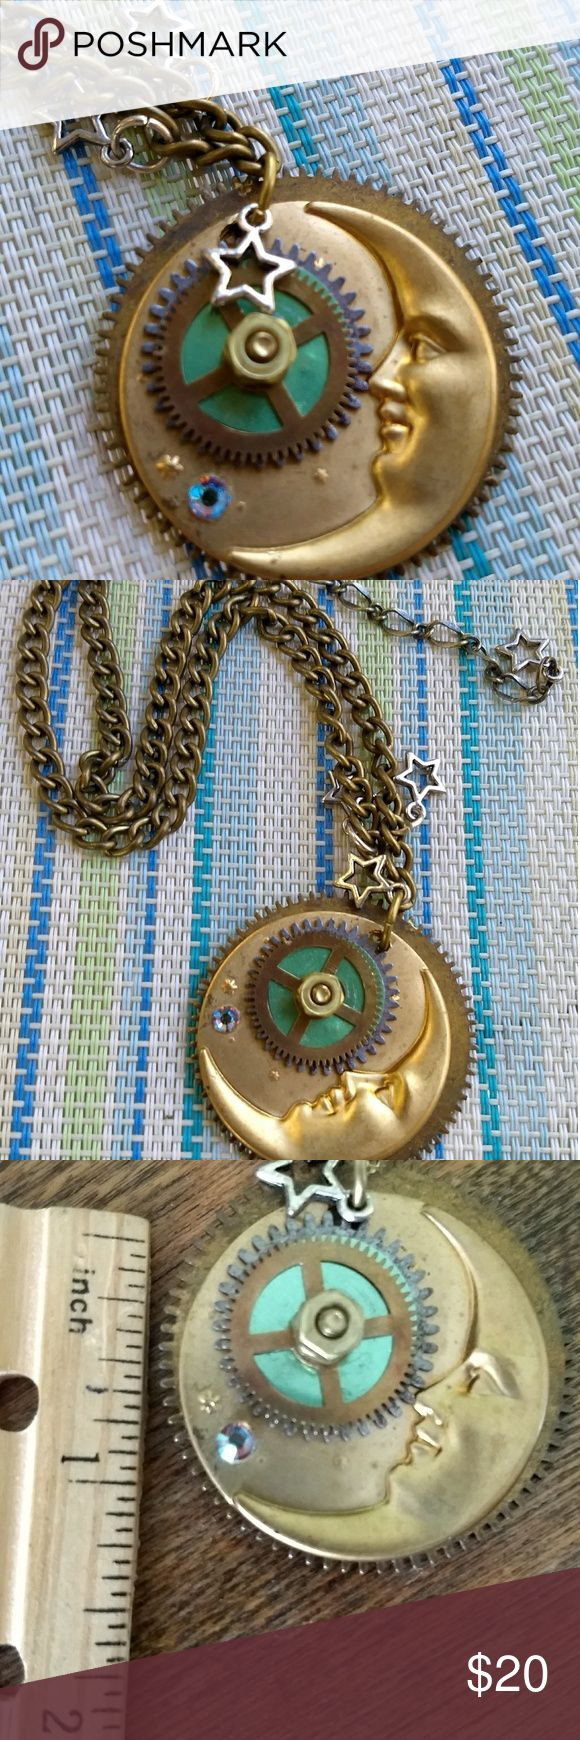 "Beautiful Steampunk Upcycled Moon  Necklace This is a OOAK handmade Steampunk necklace from my jewelry making/ selling days (No time for it now☹️). It was made from vintage clock and watch parts. Very nice heavy chain. It's about 19"" long including extender. Jewelry Necklaces"